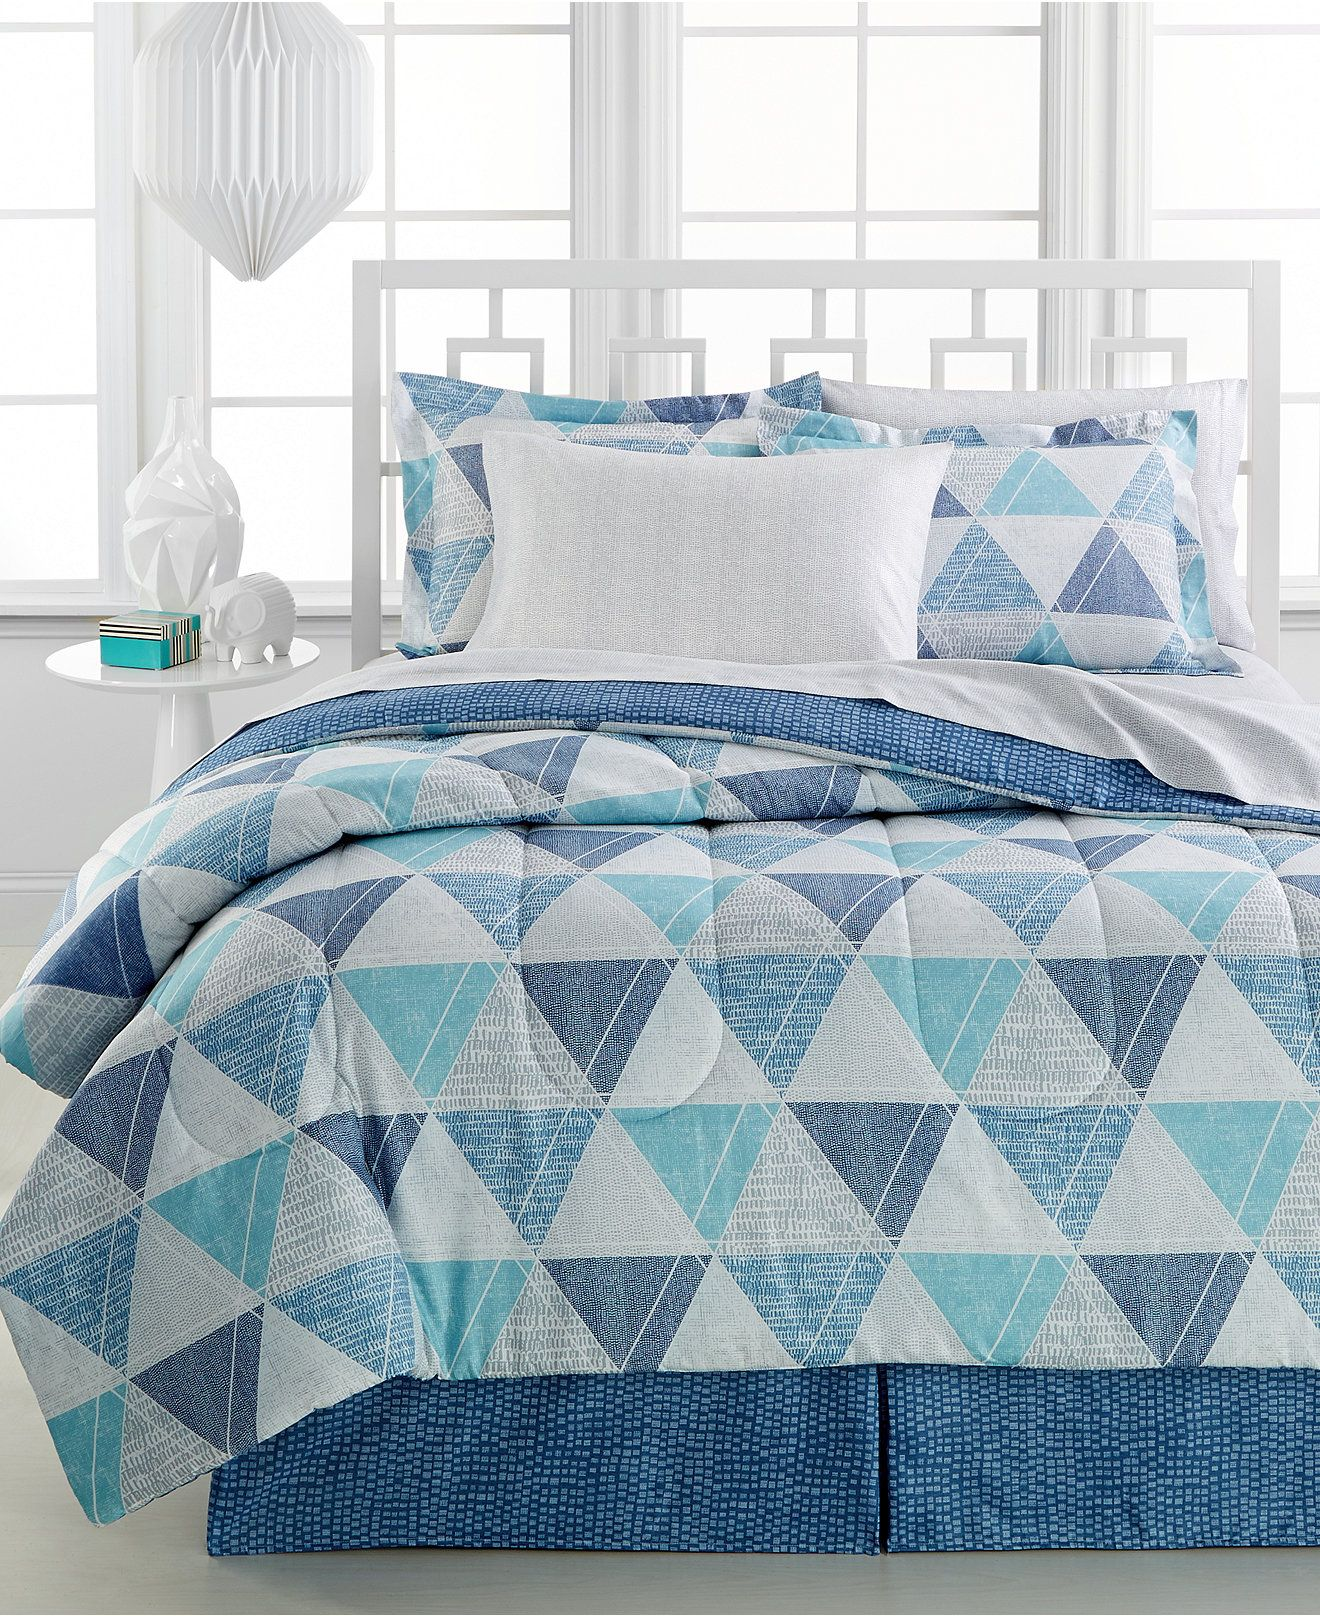 CLOSEOUT Blake 8 Pc Bedding Ensembles Reversible Bed in a Bag